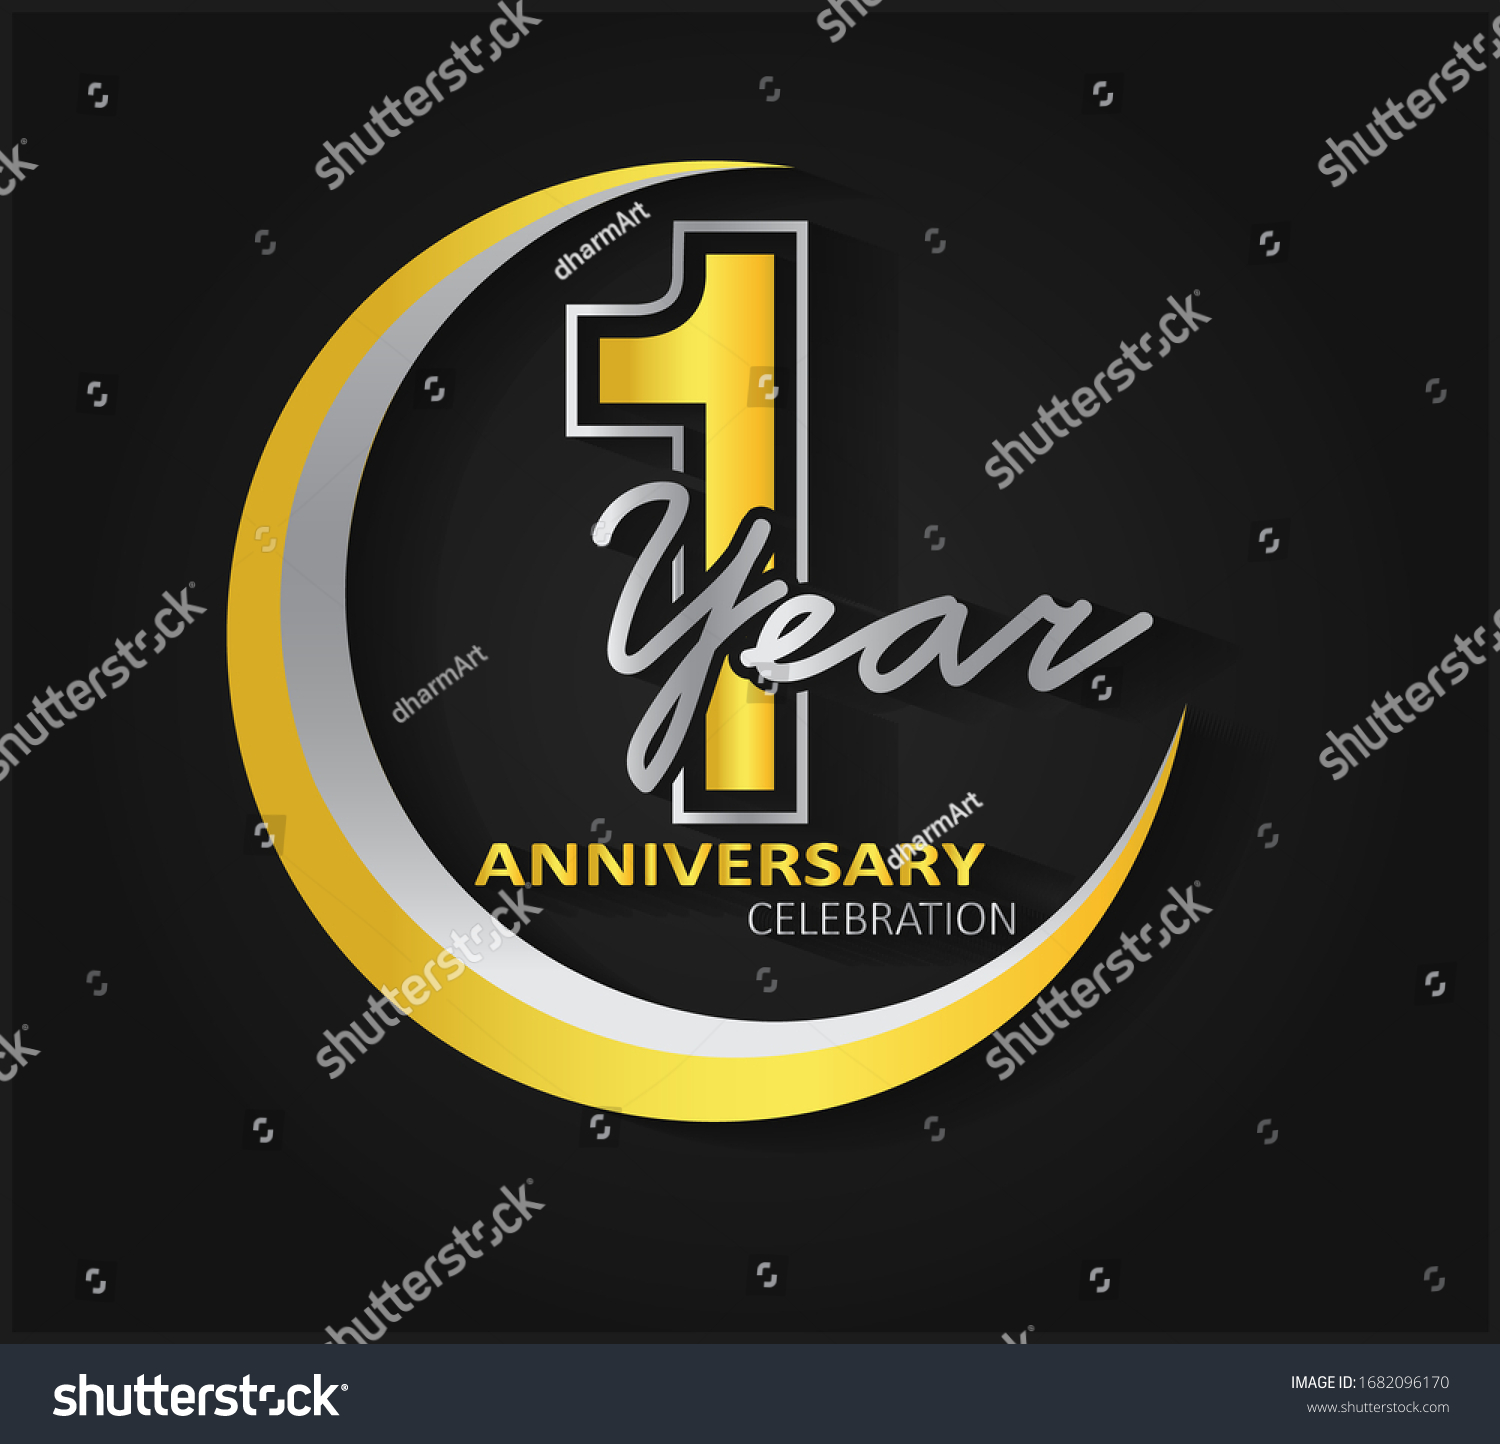 1st anniversary celebration anniversary logo ring stock vector royalty free 1682096170 shutterstock